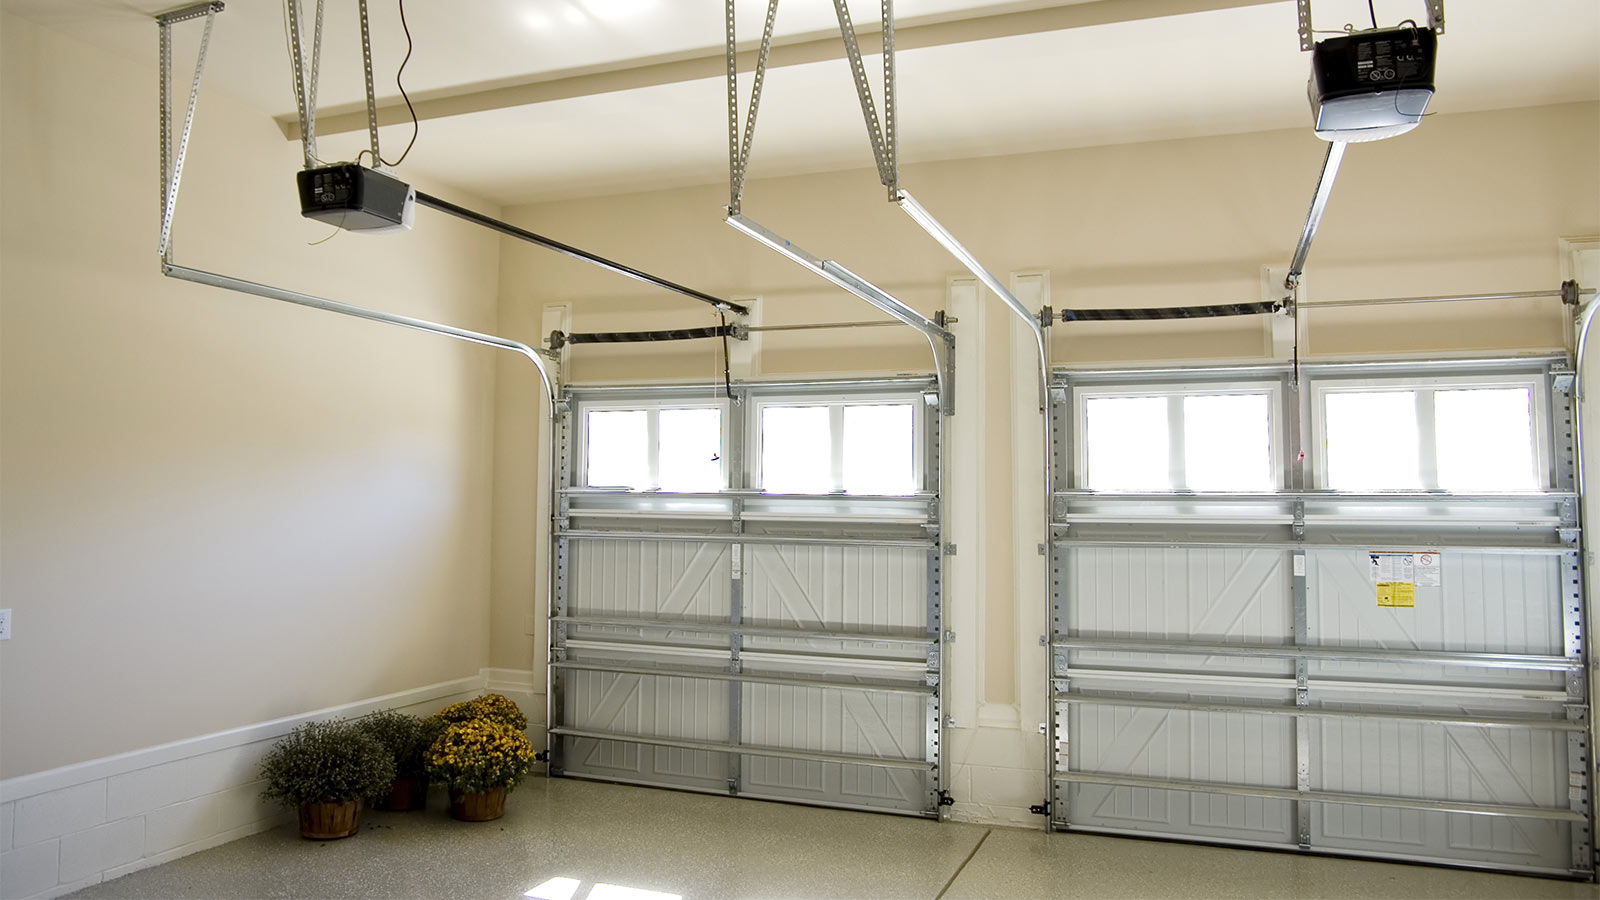 Sectional Garage Doors from Security Gates Brentwood suppliers.